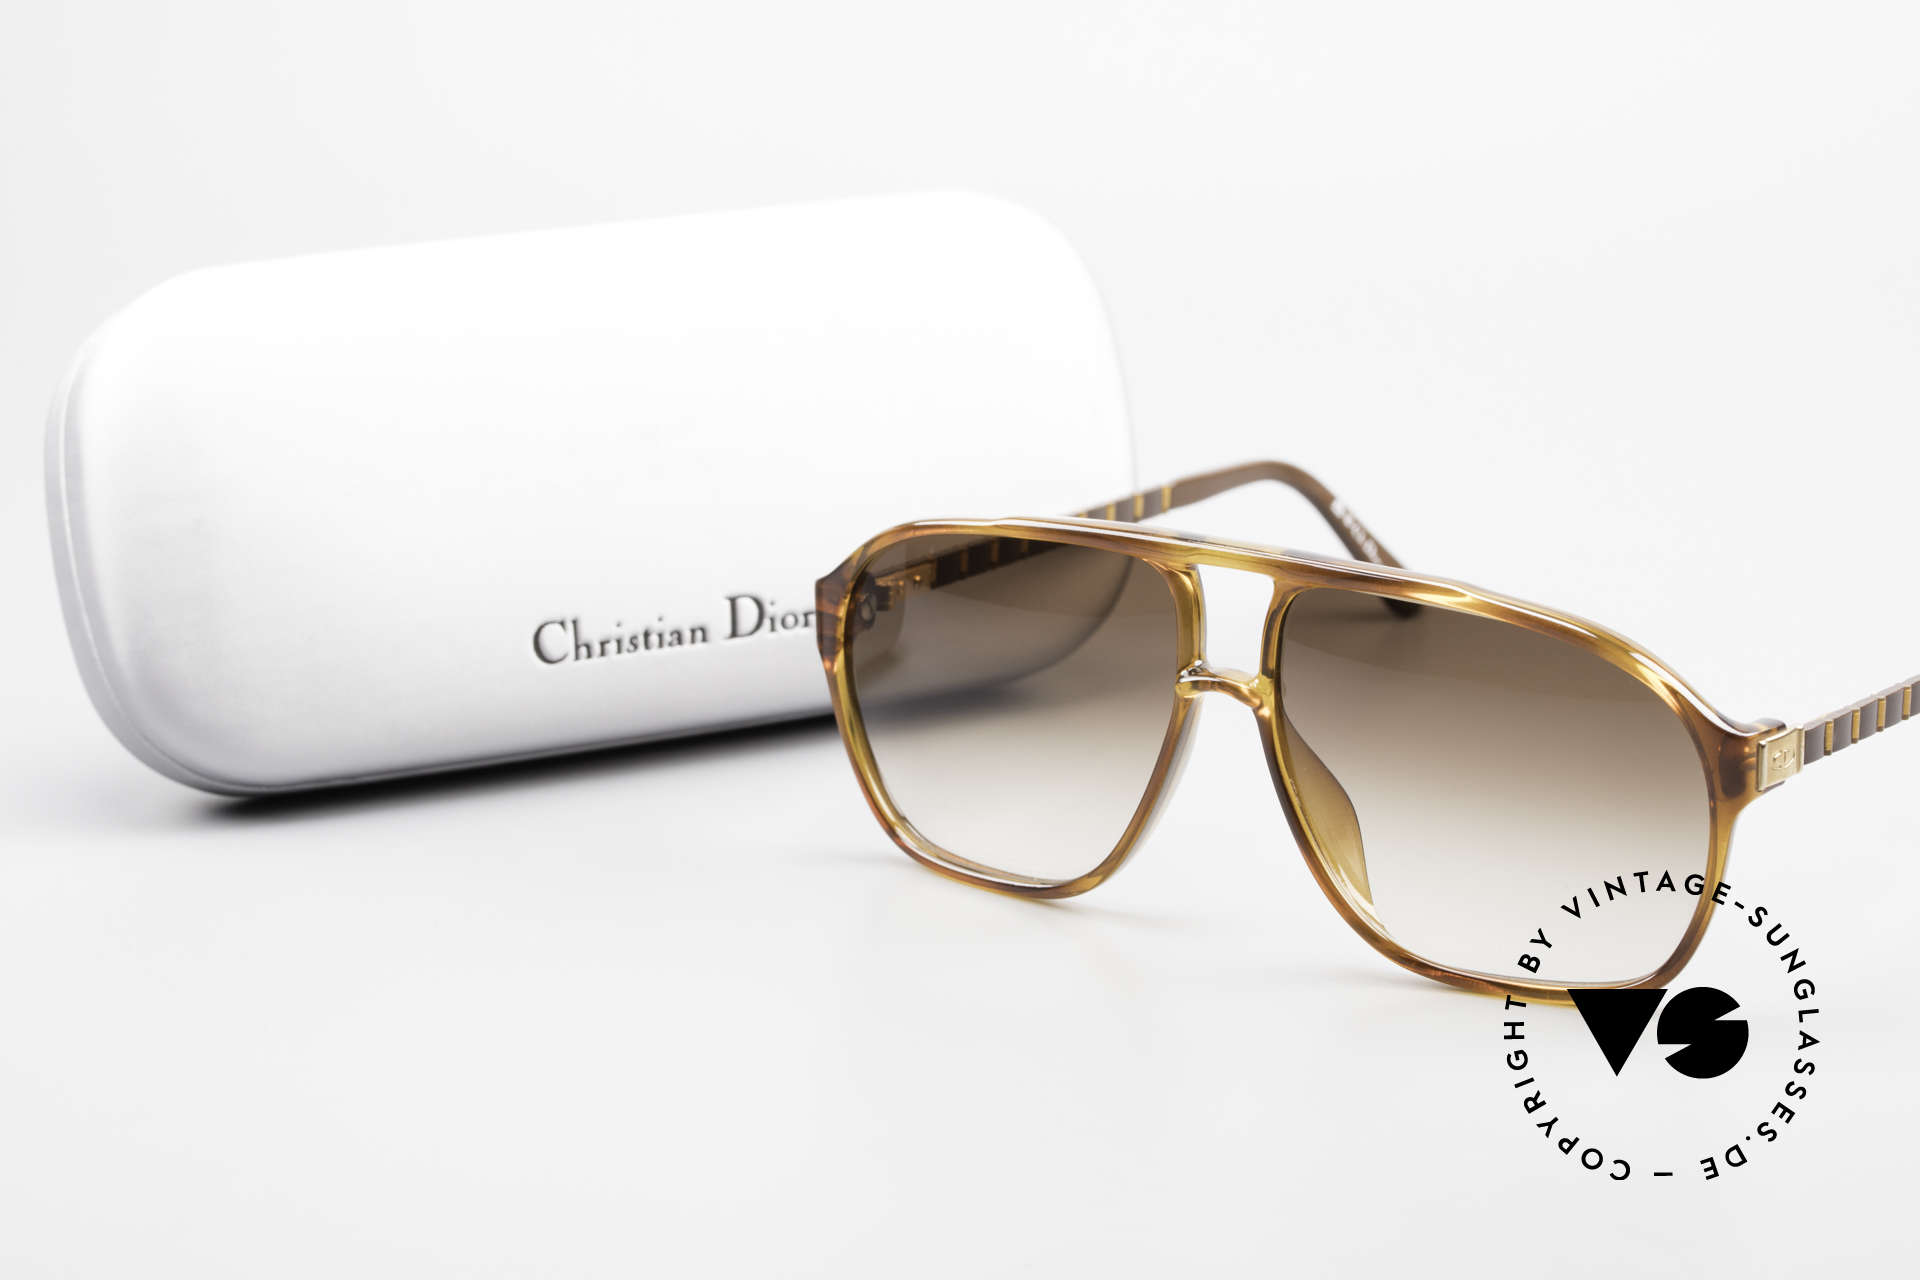 Christian Dior 2417 80's Men's Shades Monsieur, the sun lenses could be replaced with prescriptions, Made for Men